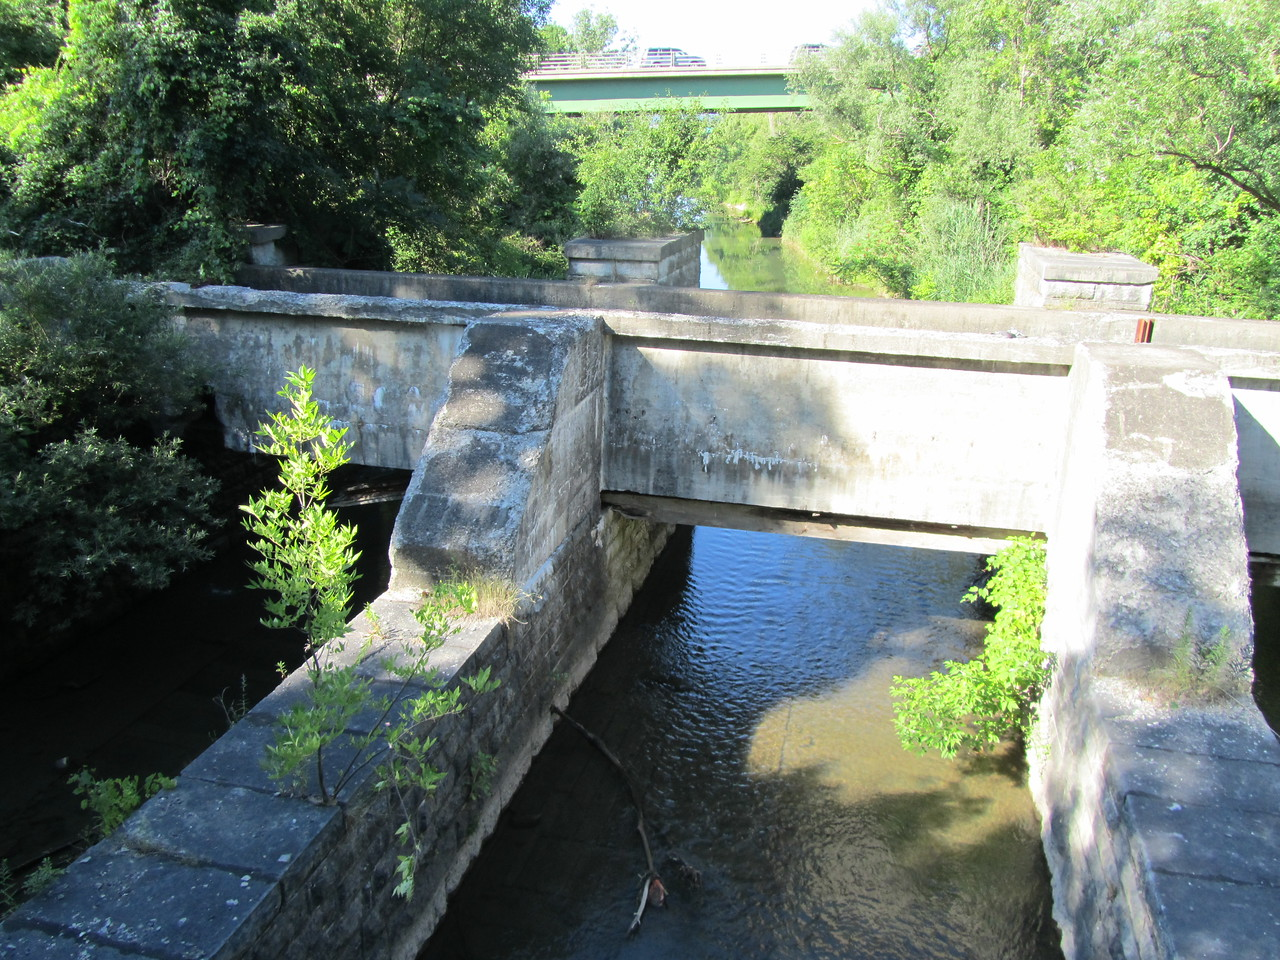 Another aquaduct carrying a creek over a creek.